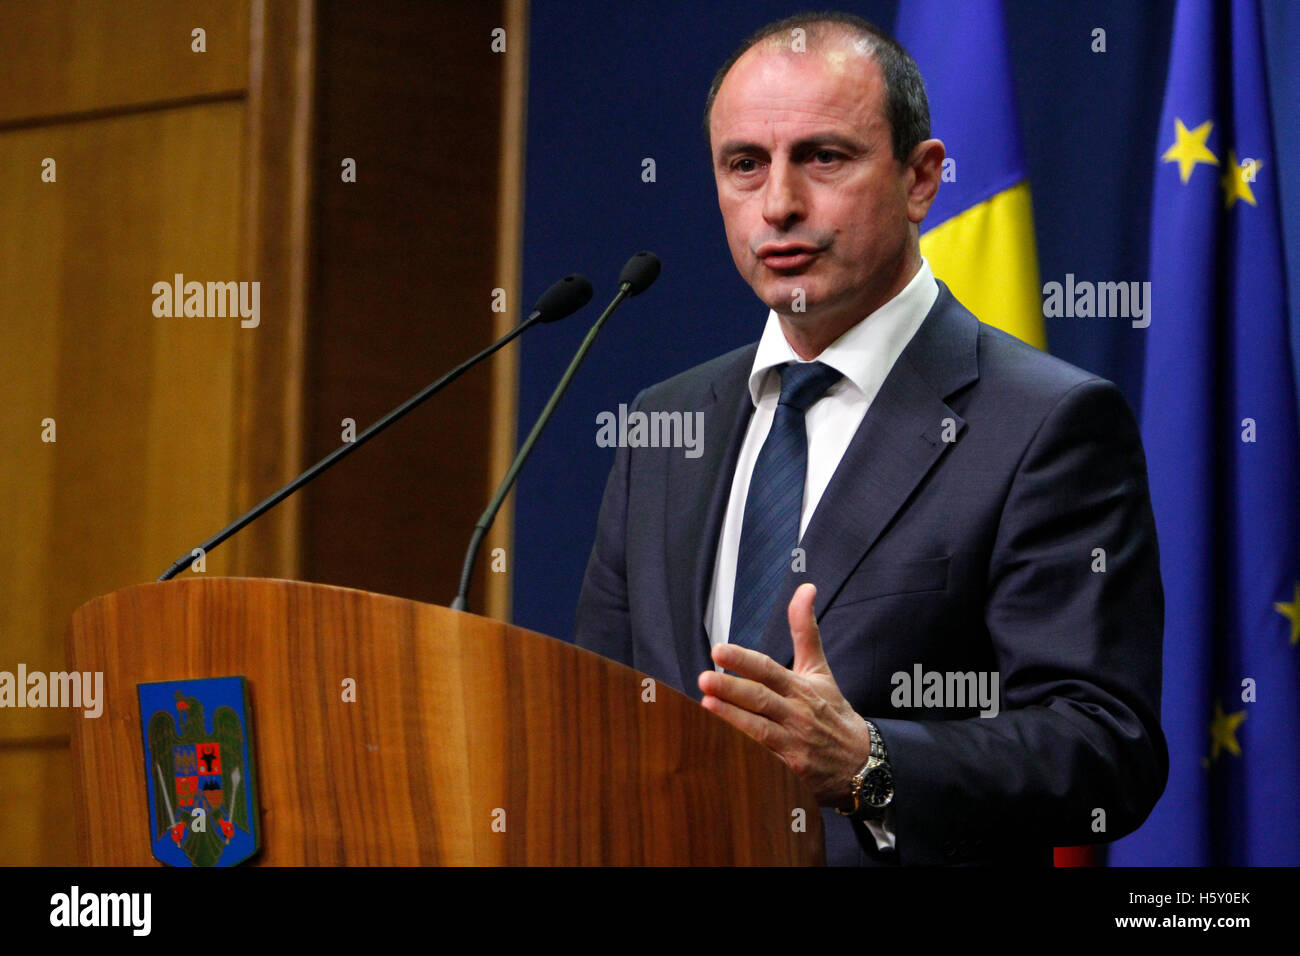 BUCHAREST, ROMANIA - OCTOBER 19, 2016: Romanian Minister of Agriculture and Rural Development, Achim Irimescu speaks - Stock Image